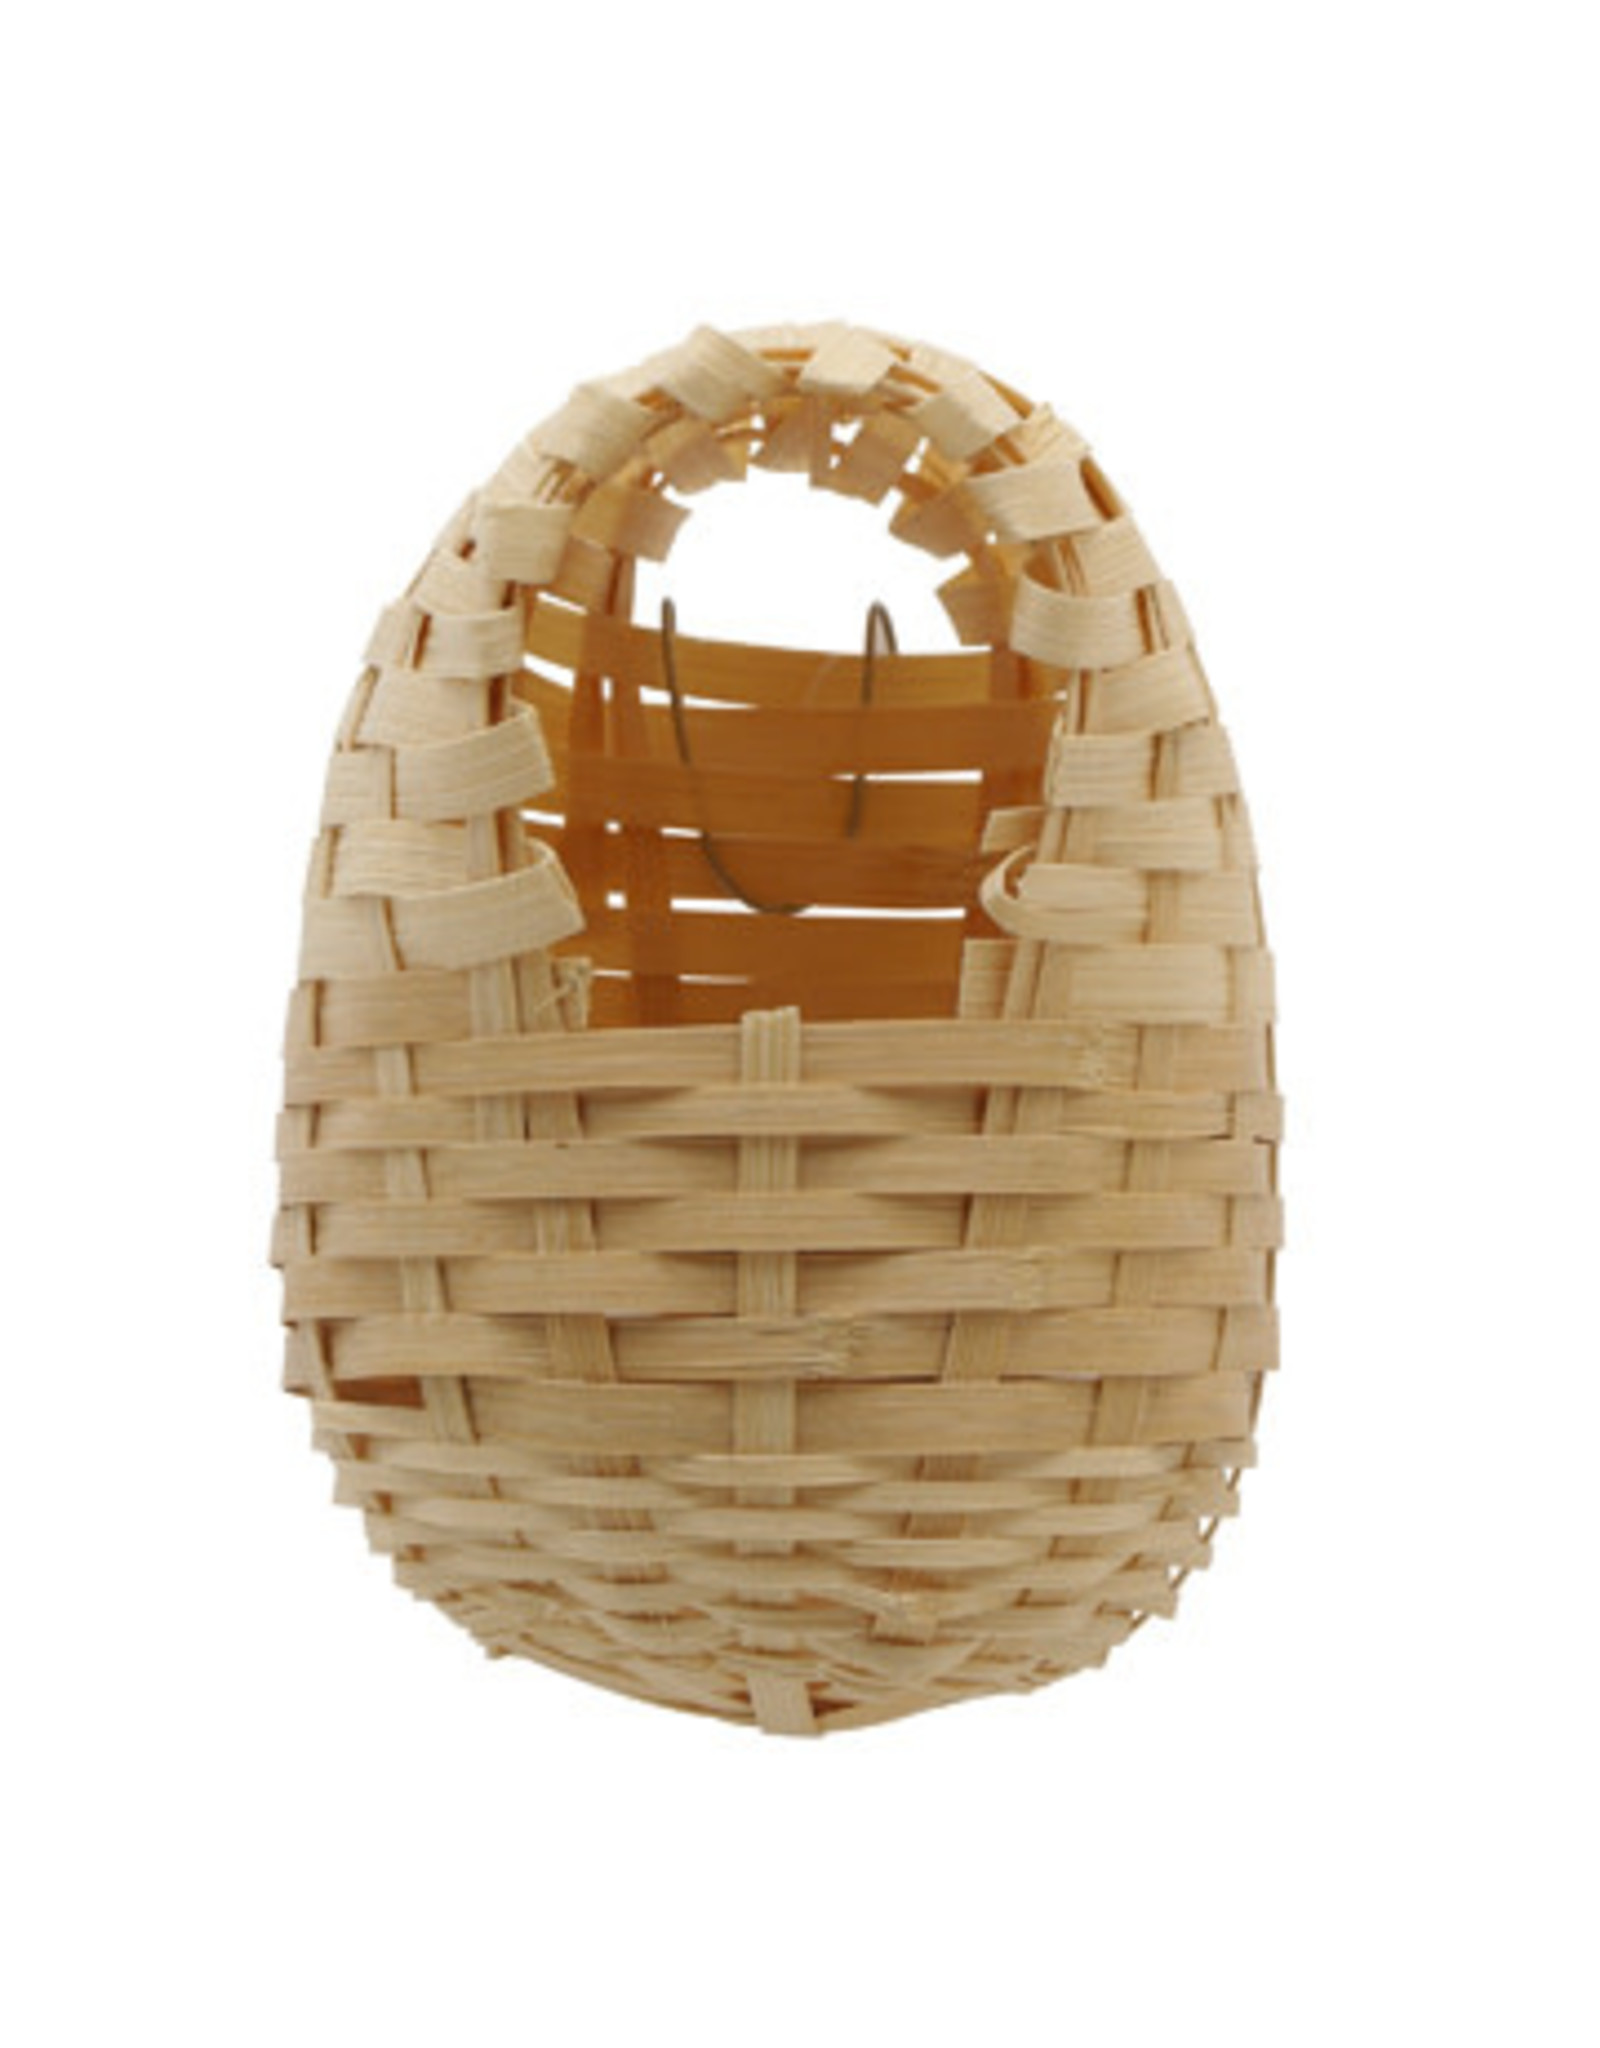 """Living World Bamboo Bird Nest for Finches - Large - 14 cm x 11 cm x 16 cm (5.5"""" x 4.3"""" x 6.25"""" in)"""